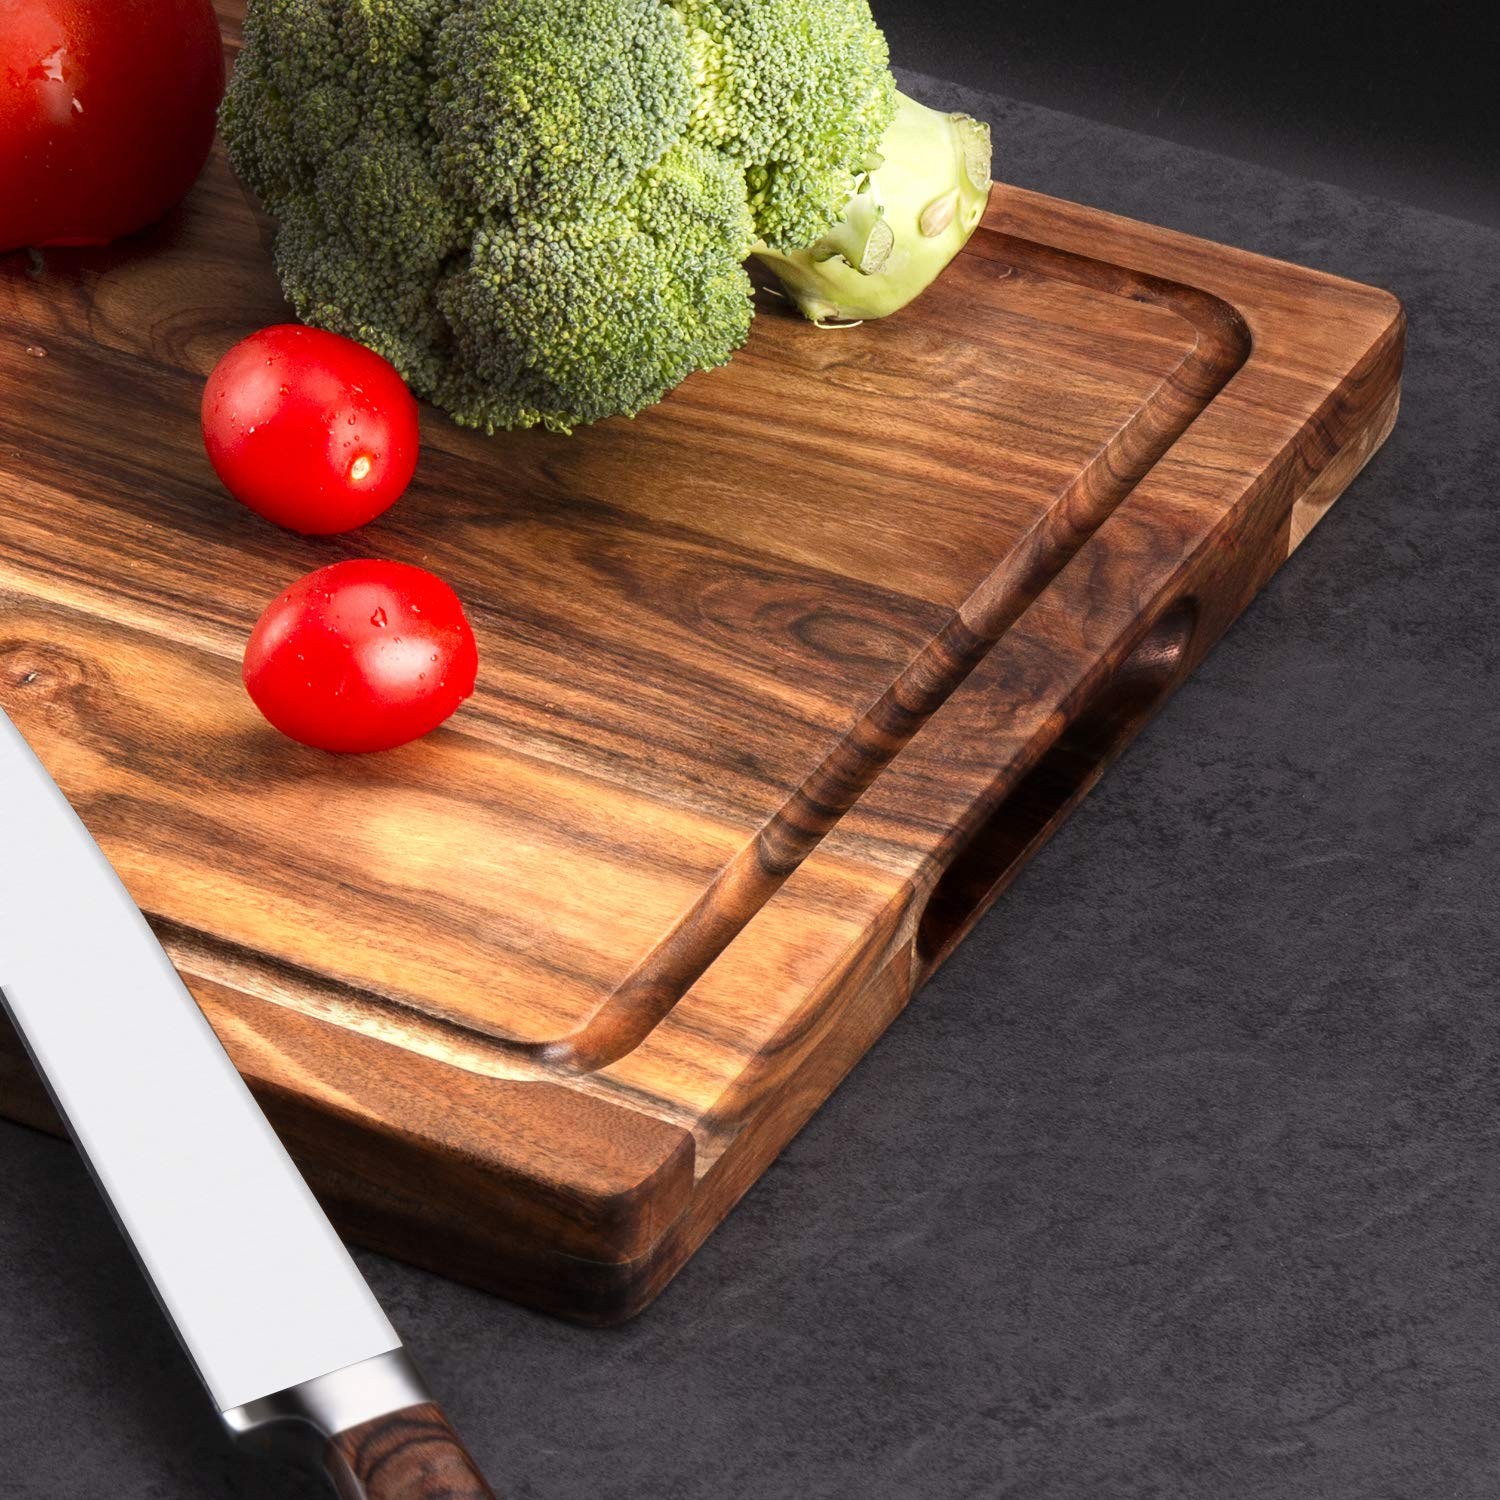 AIJAI Natural Wood Cutting Board(M-XL), Large Multipurpose Thick Acacia Wood Chopping Board for Kitchen Serving Tray for Vegetables, Fruit, Meat, Fish & Cheese| Reversible Butcher Block by AIJAI (Image #4)